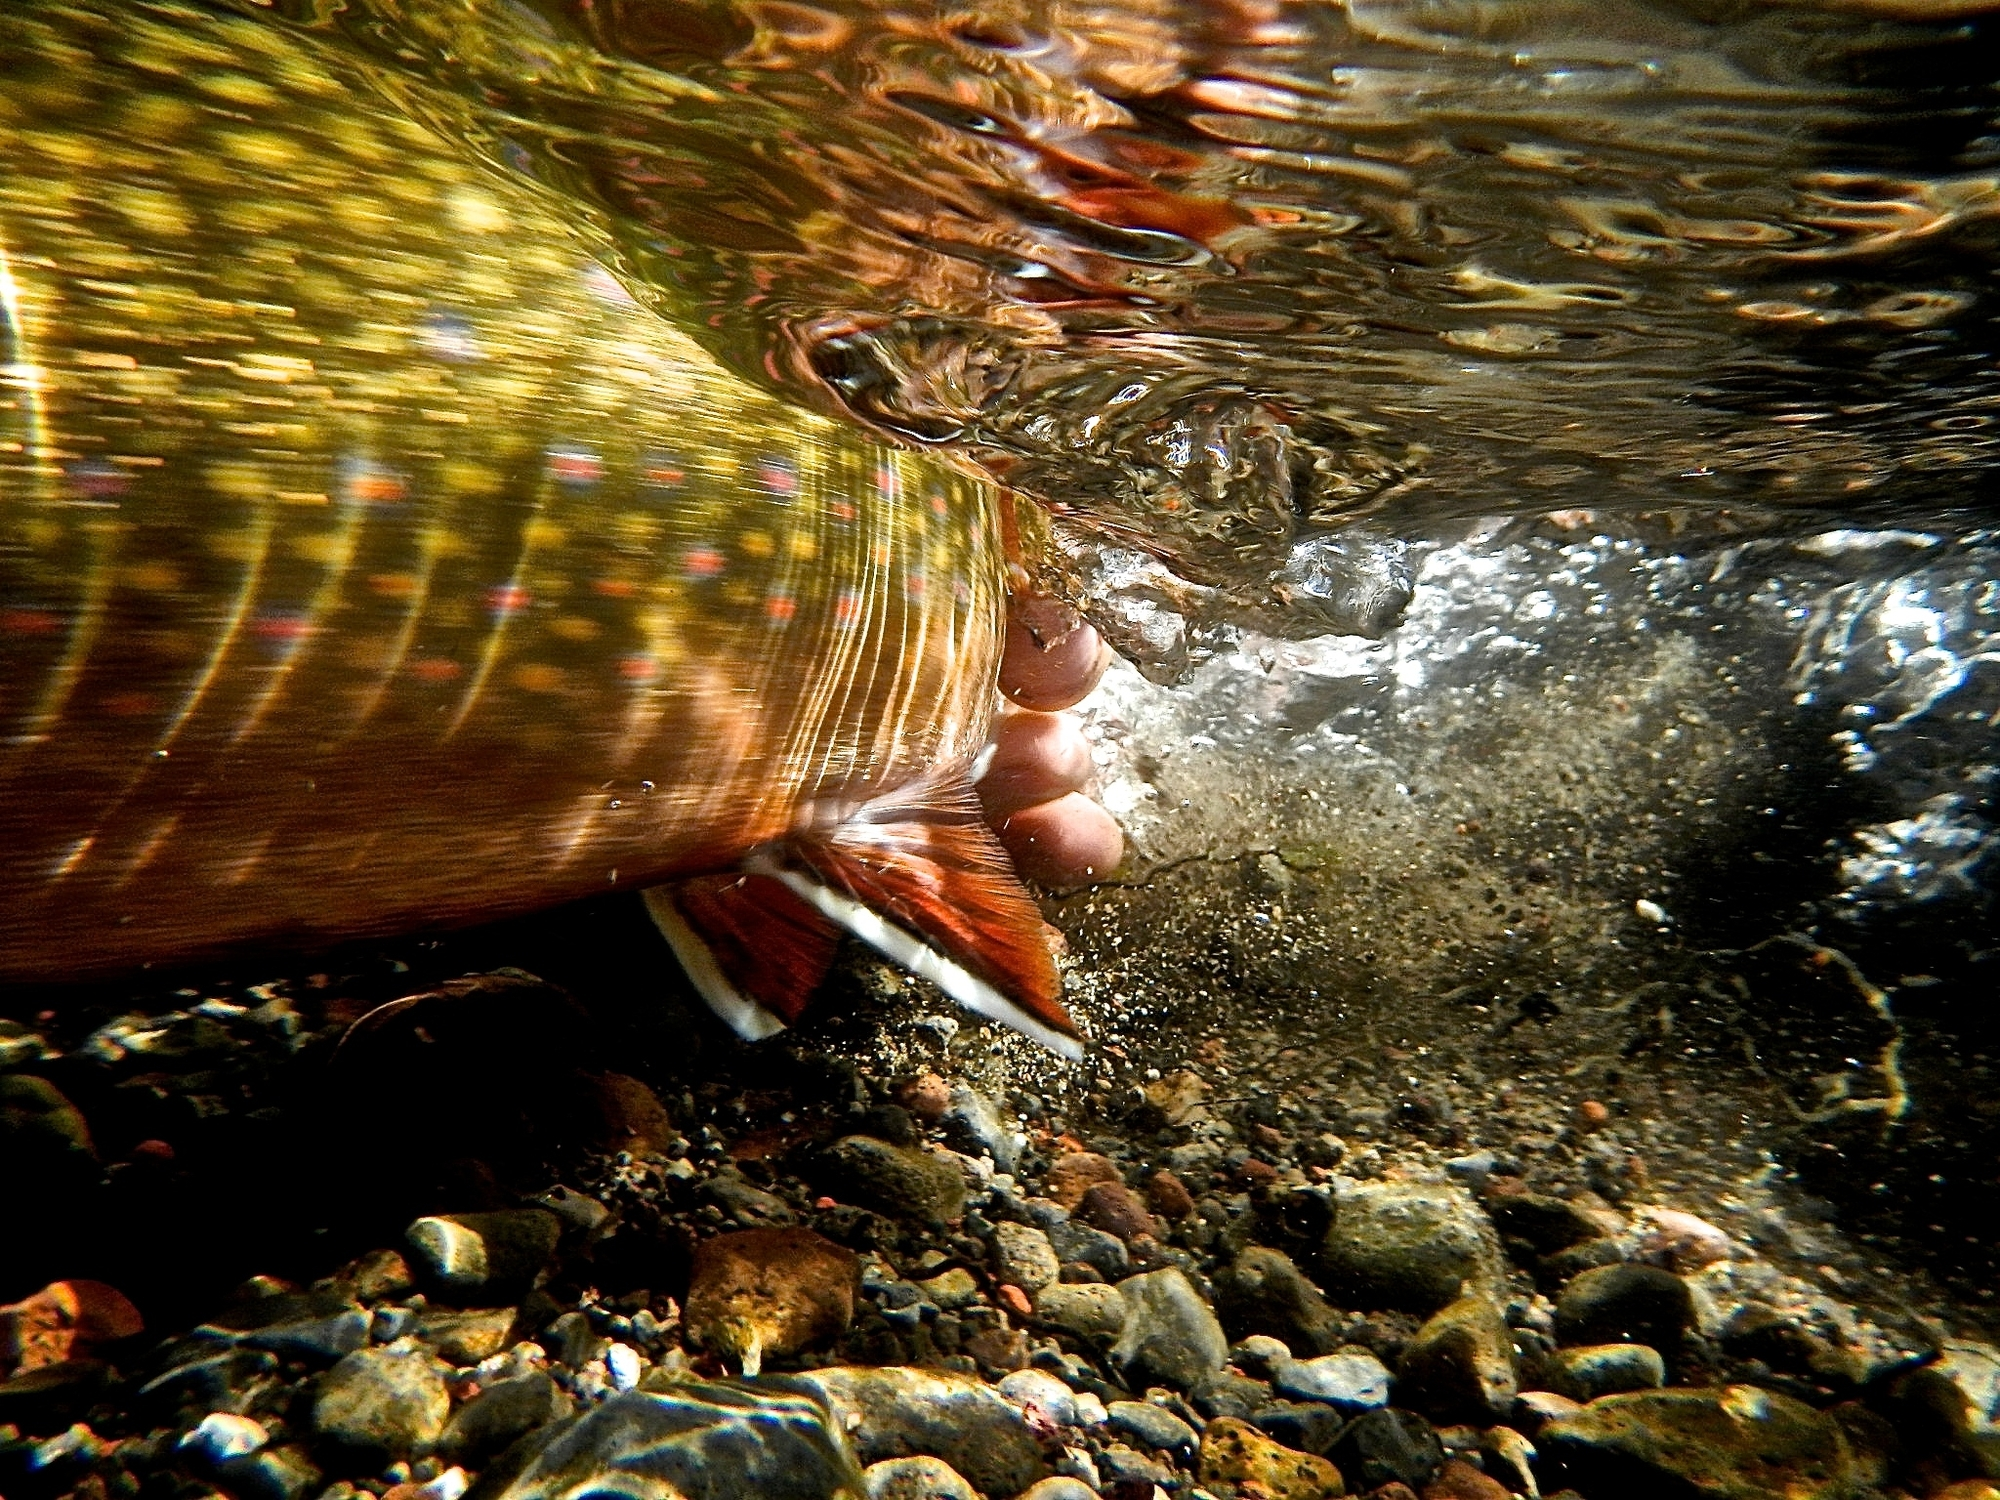 An absolute favorite of some of this year's judges, this shot by Will Griffith's of a Upper Deschutes River brook trout, is alive with energy and color.